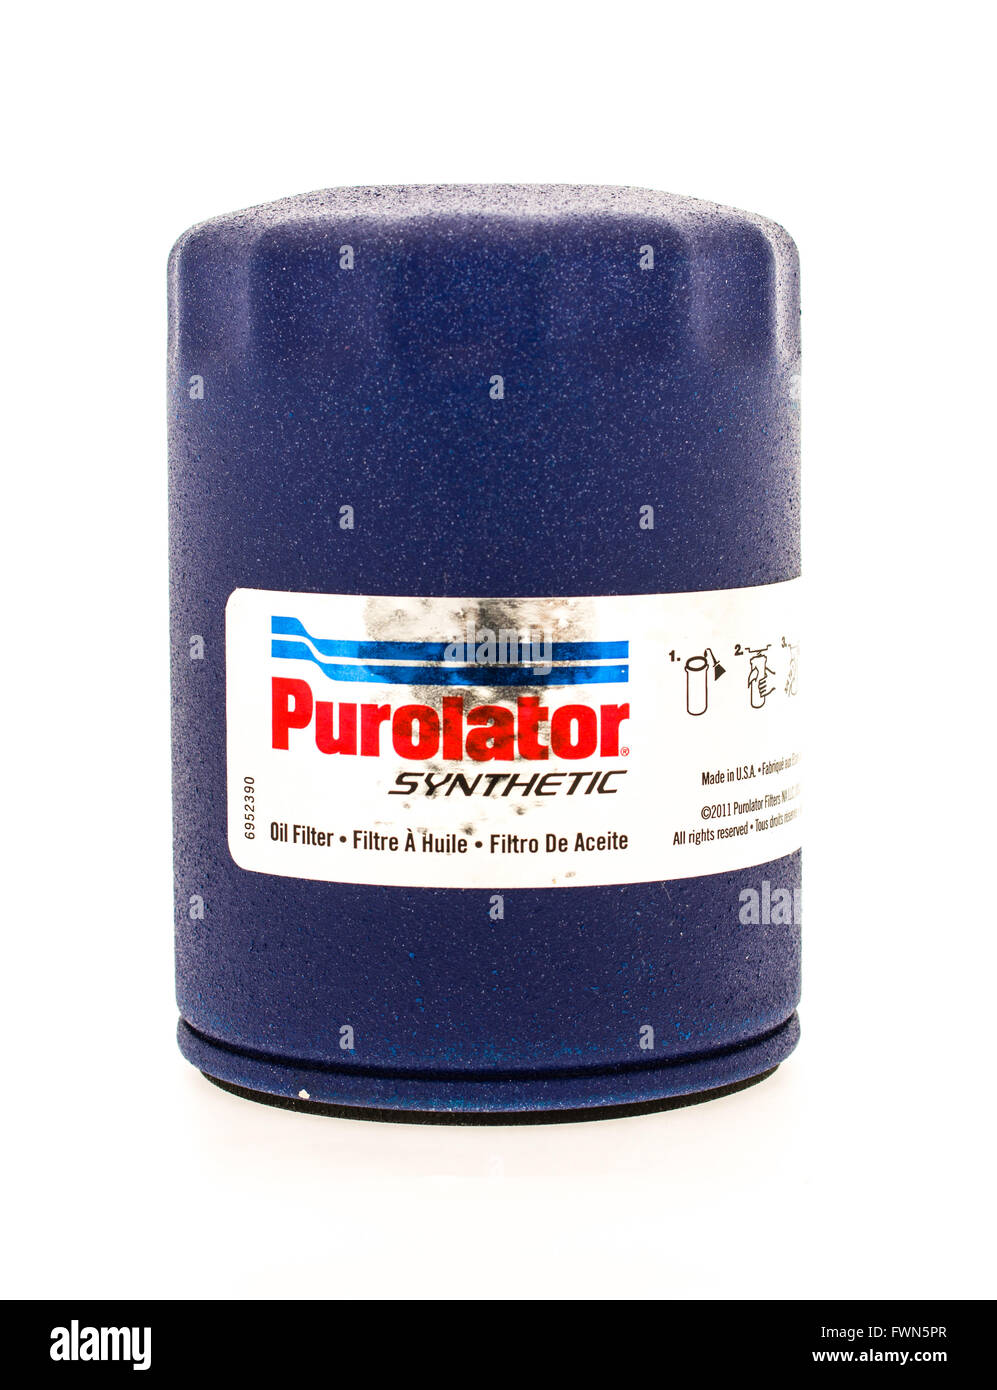 Purolator Stock Photos Images Alamy Fuel Filters Winneconne Wi 23 August 2015 Oil Filter Used On Vehicles